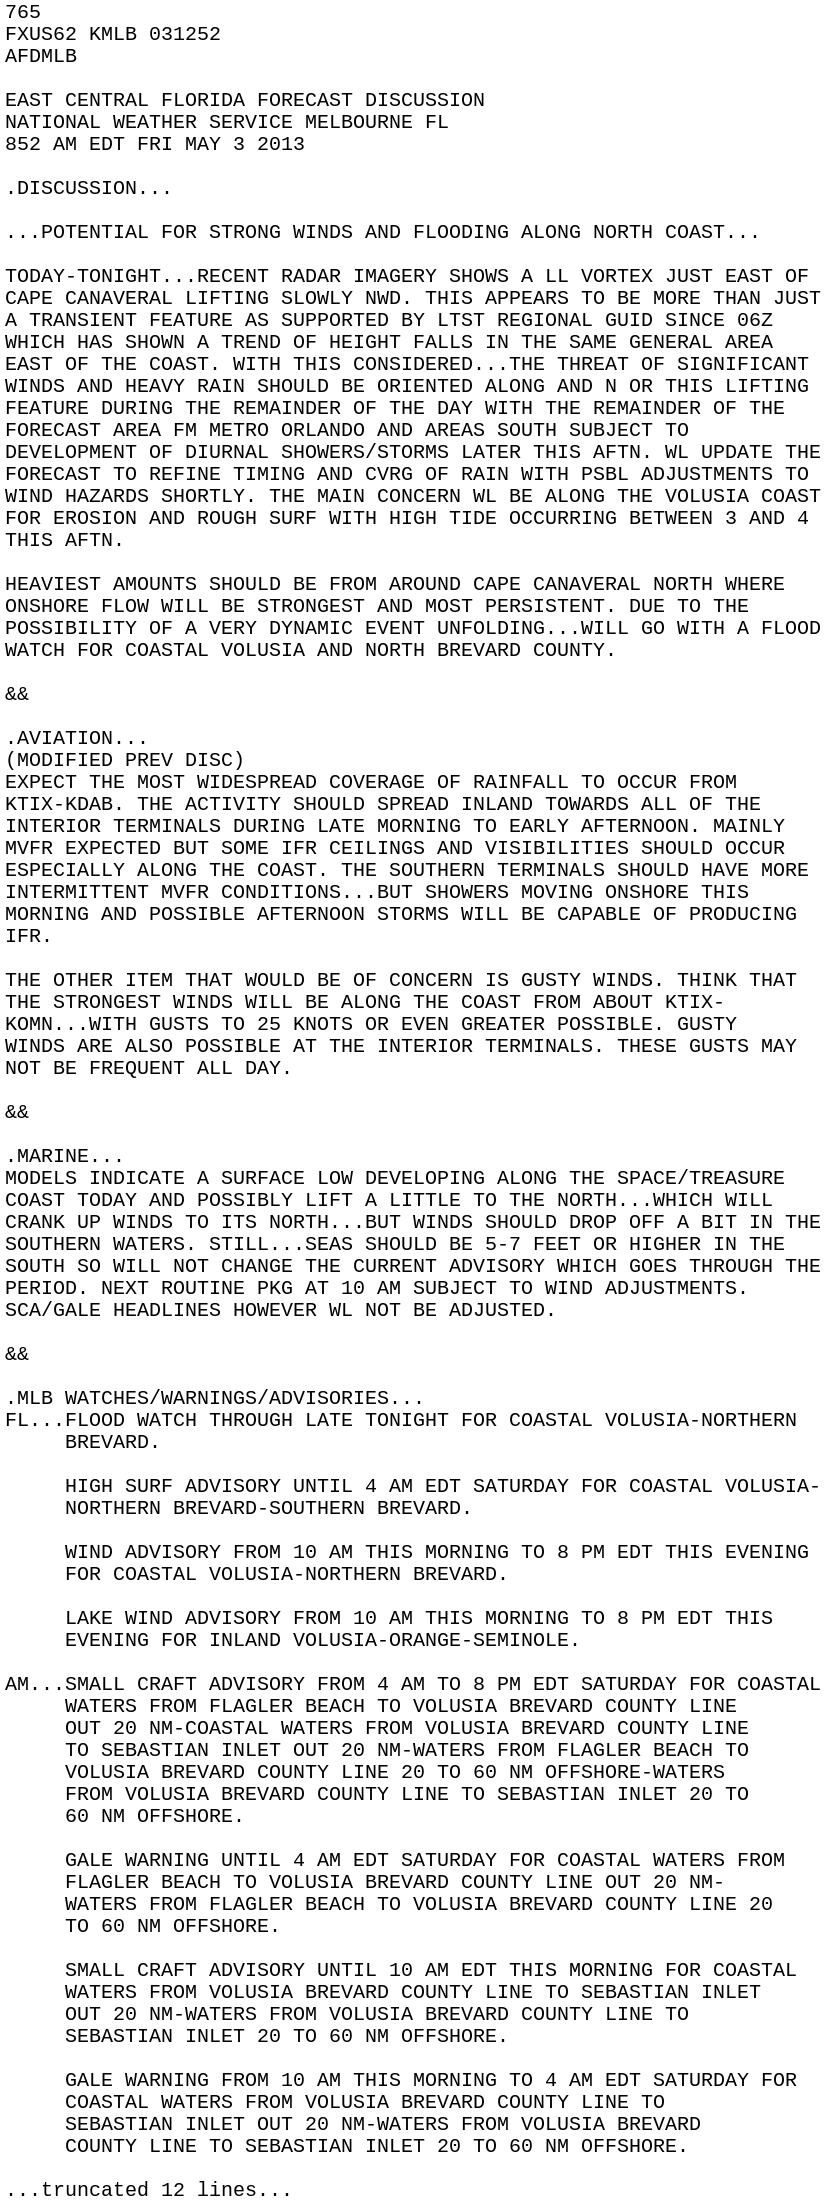 IEM :: AFD from NWS MLB